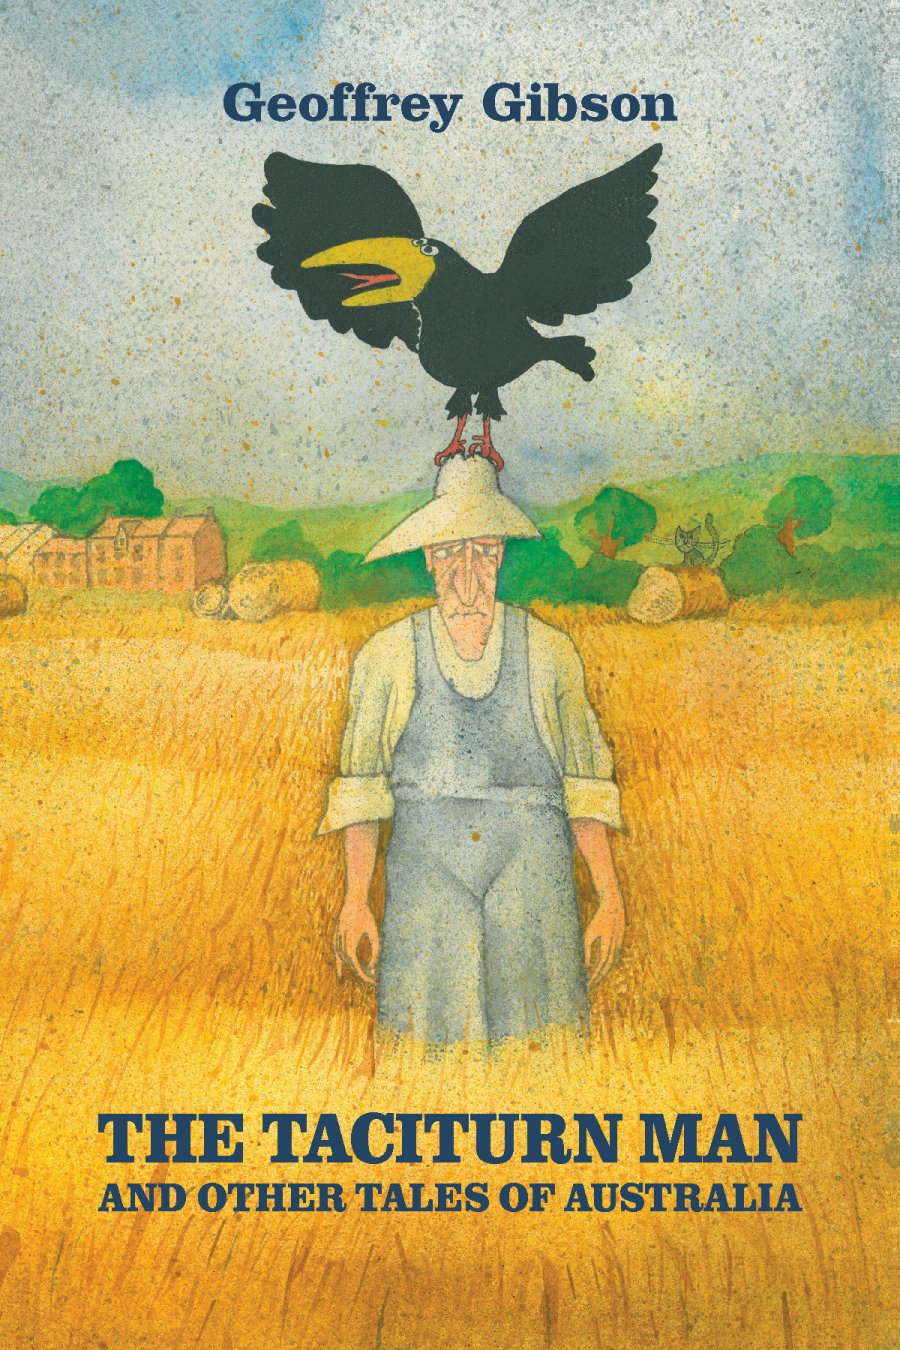 The Taciturn Man: and other Tales of Australia 978-1-61599-120-4